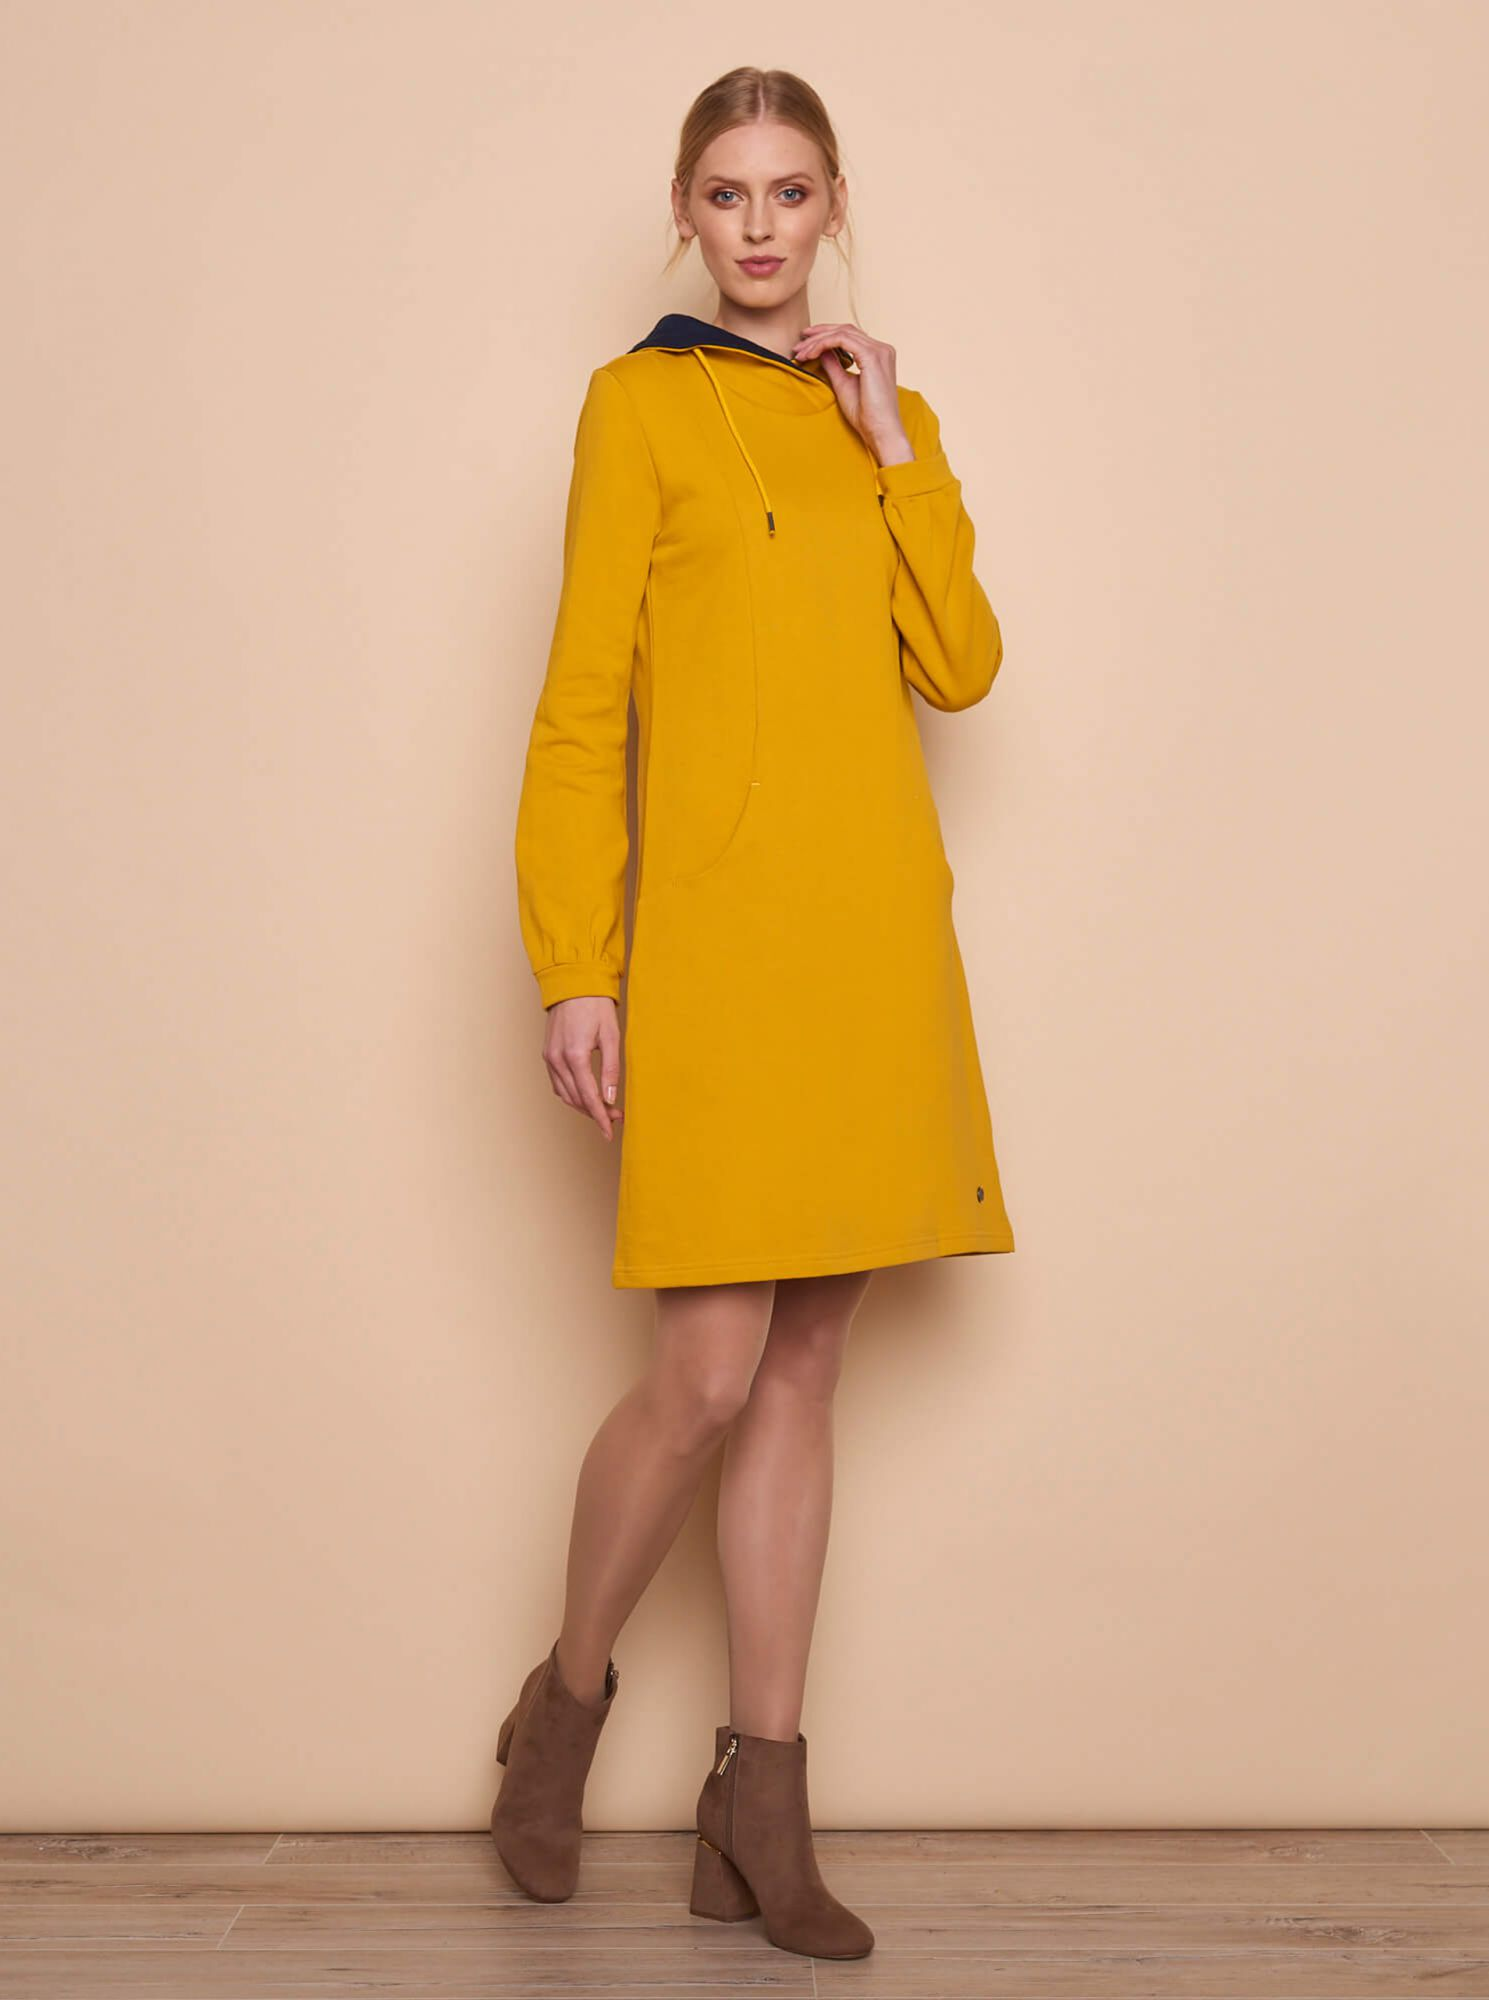 Tranquillo yellow mikinové dress with pockets